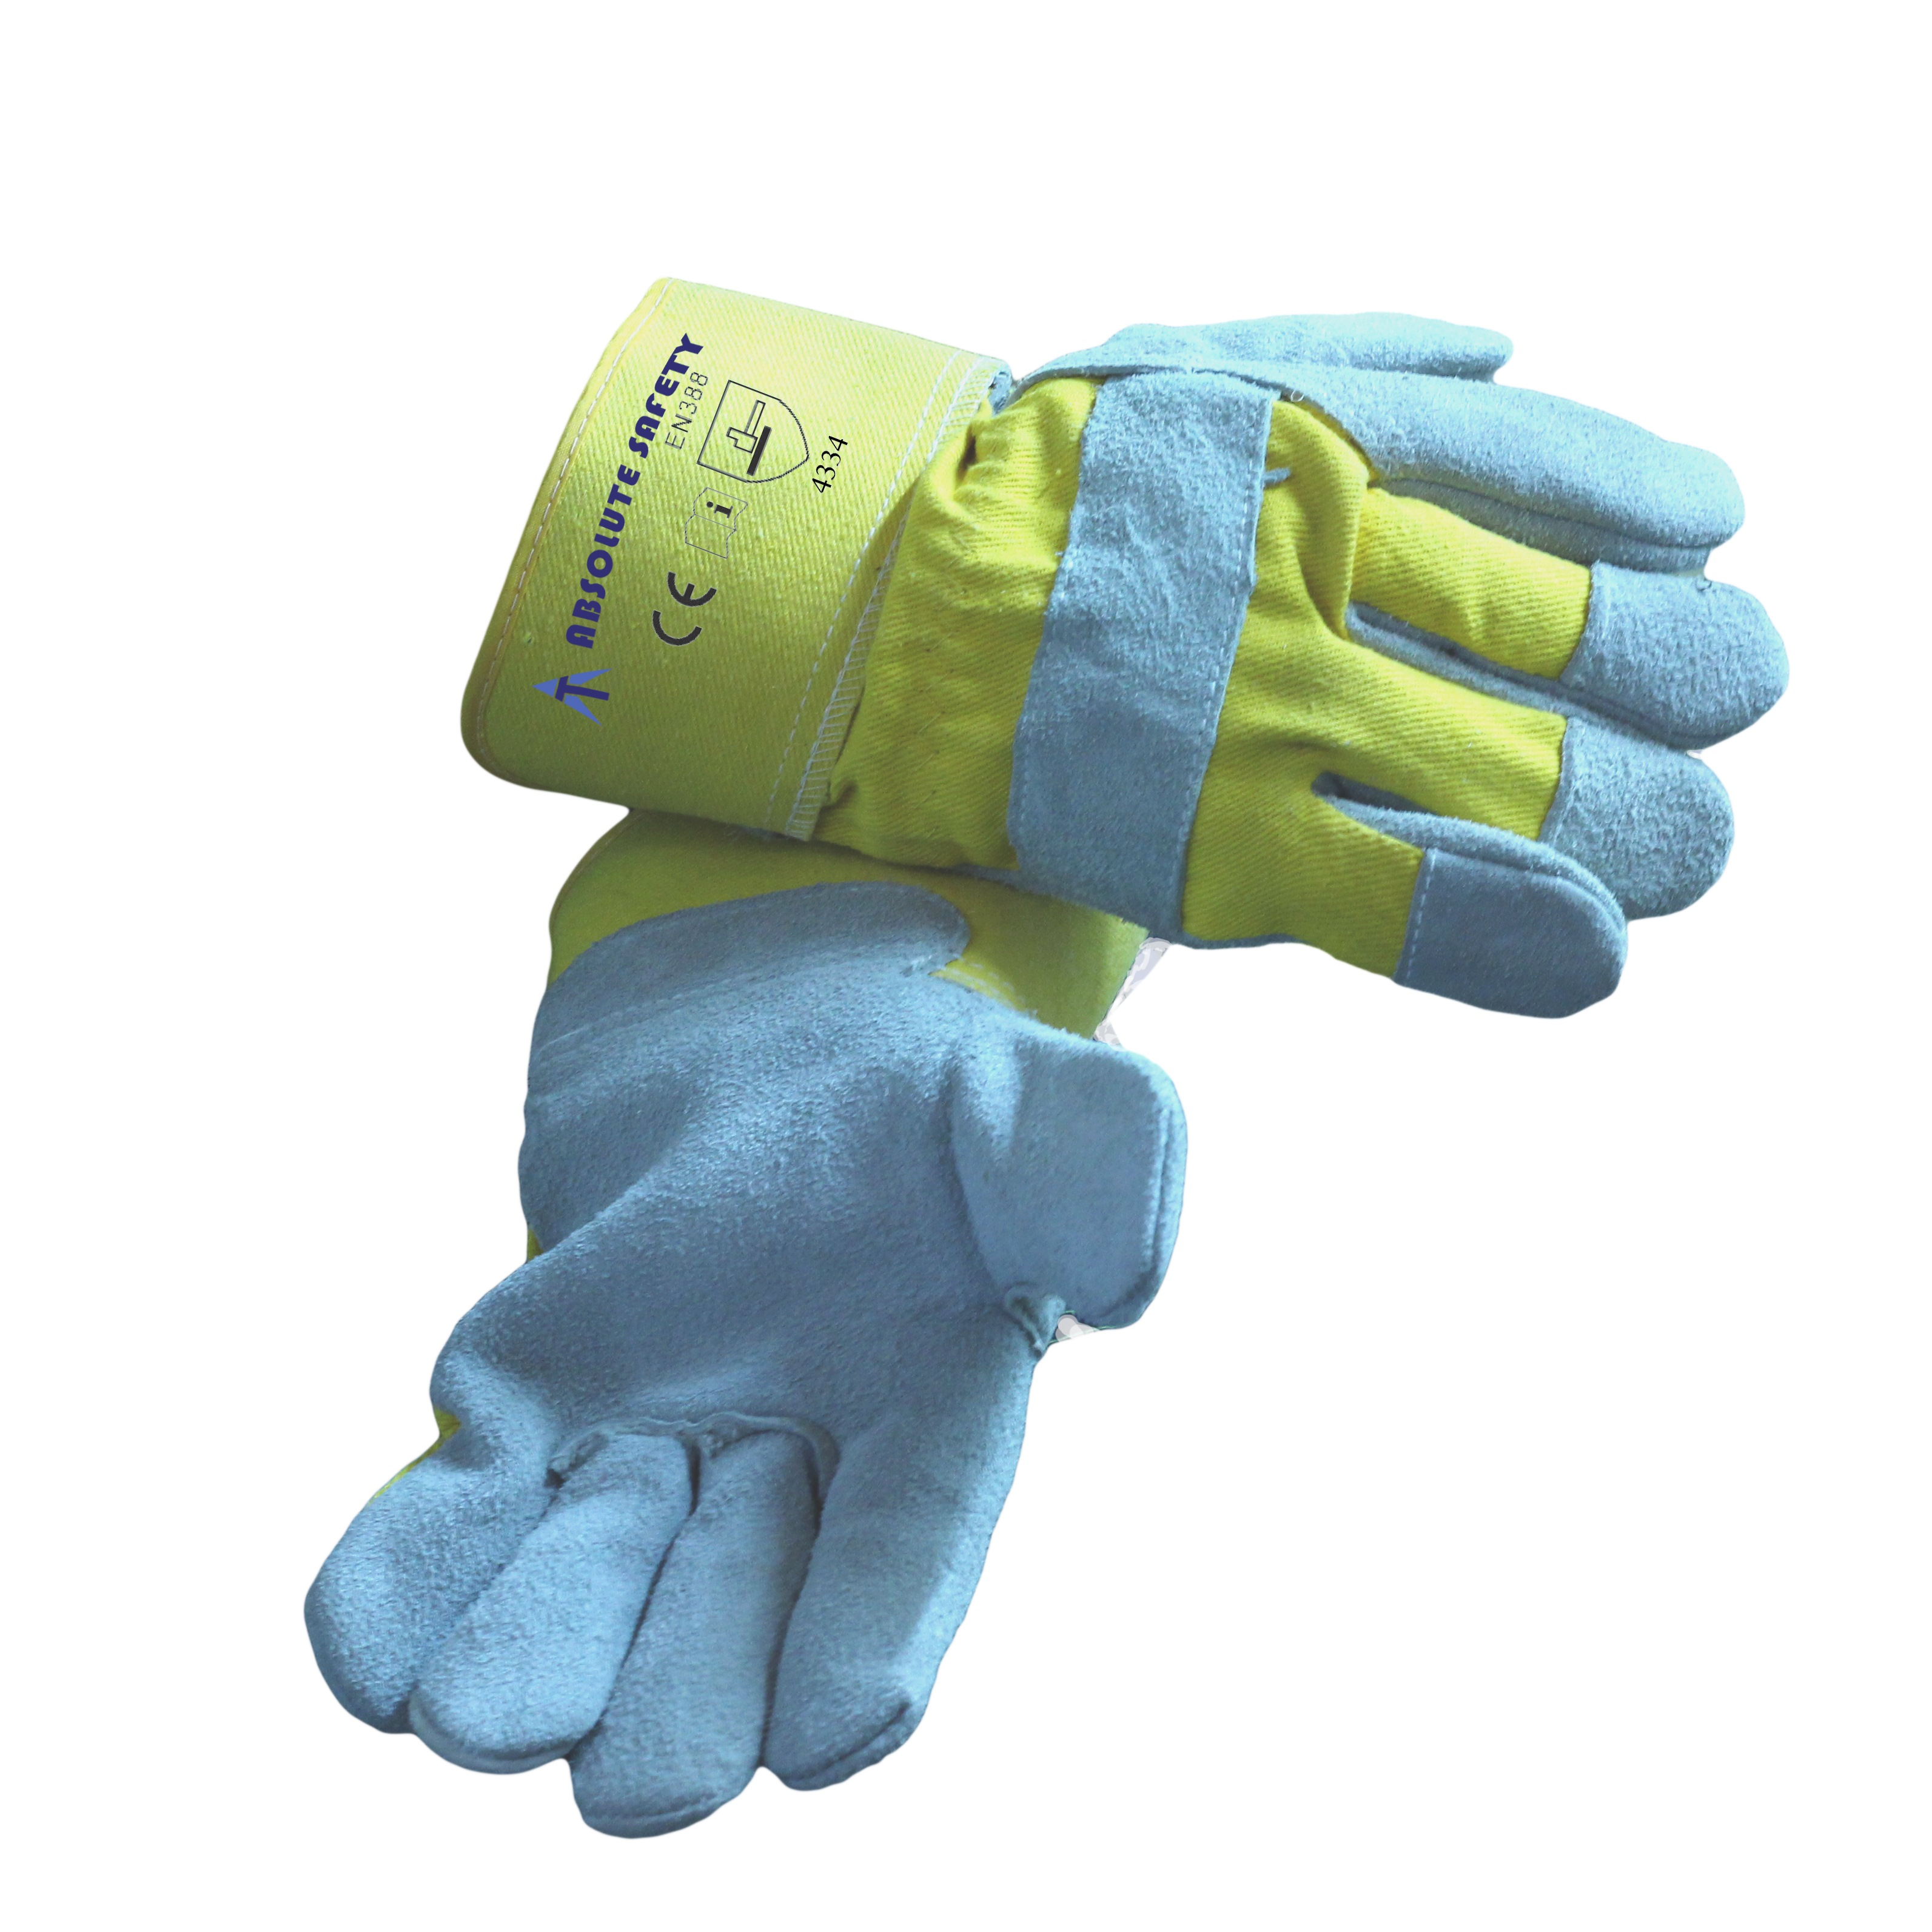 ABSOLUTE SAFETY YELLOW CANADIAN GLOVE EN388 4334 CUT 3